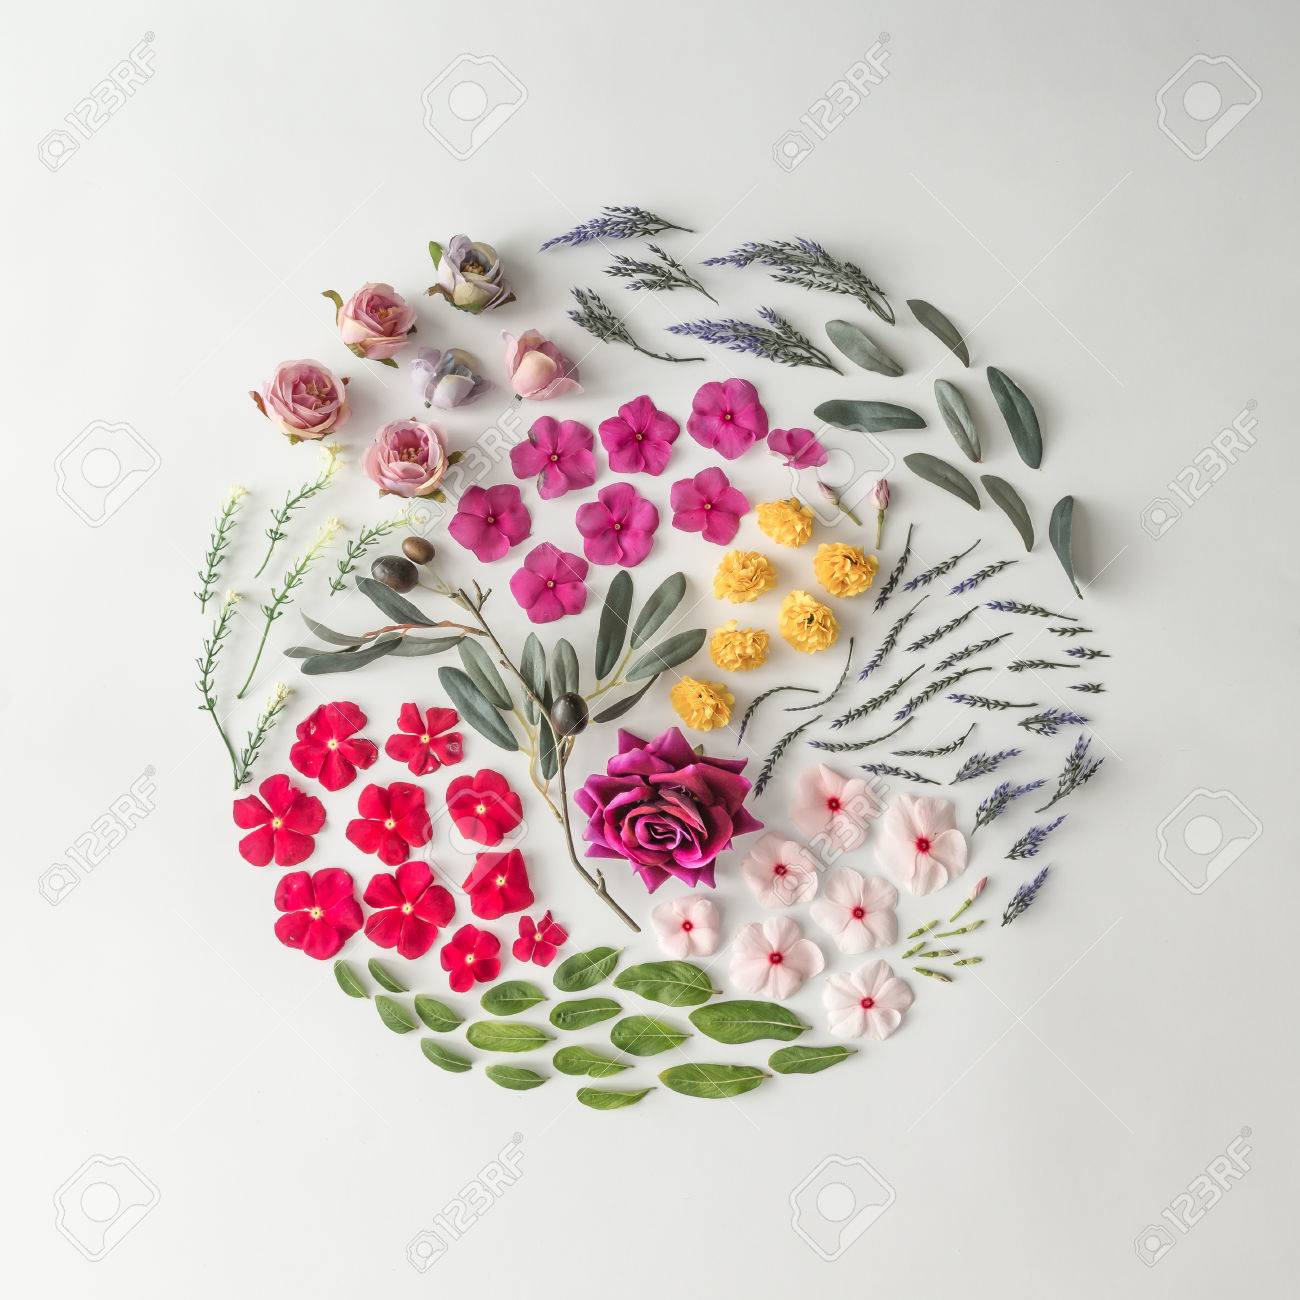 Creative layout made of various flowers. Flat lay. Nature background - 85113241